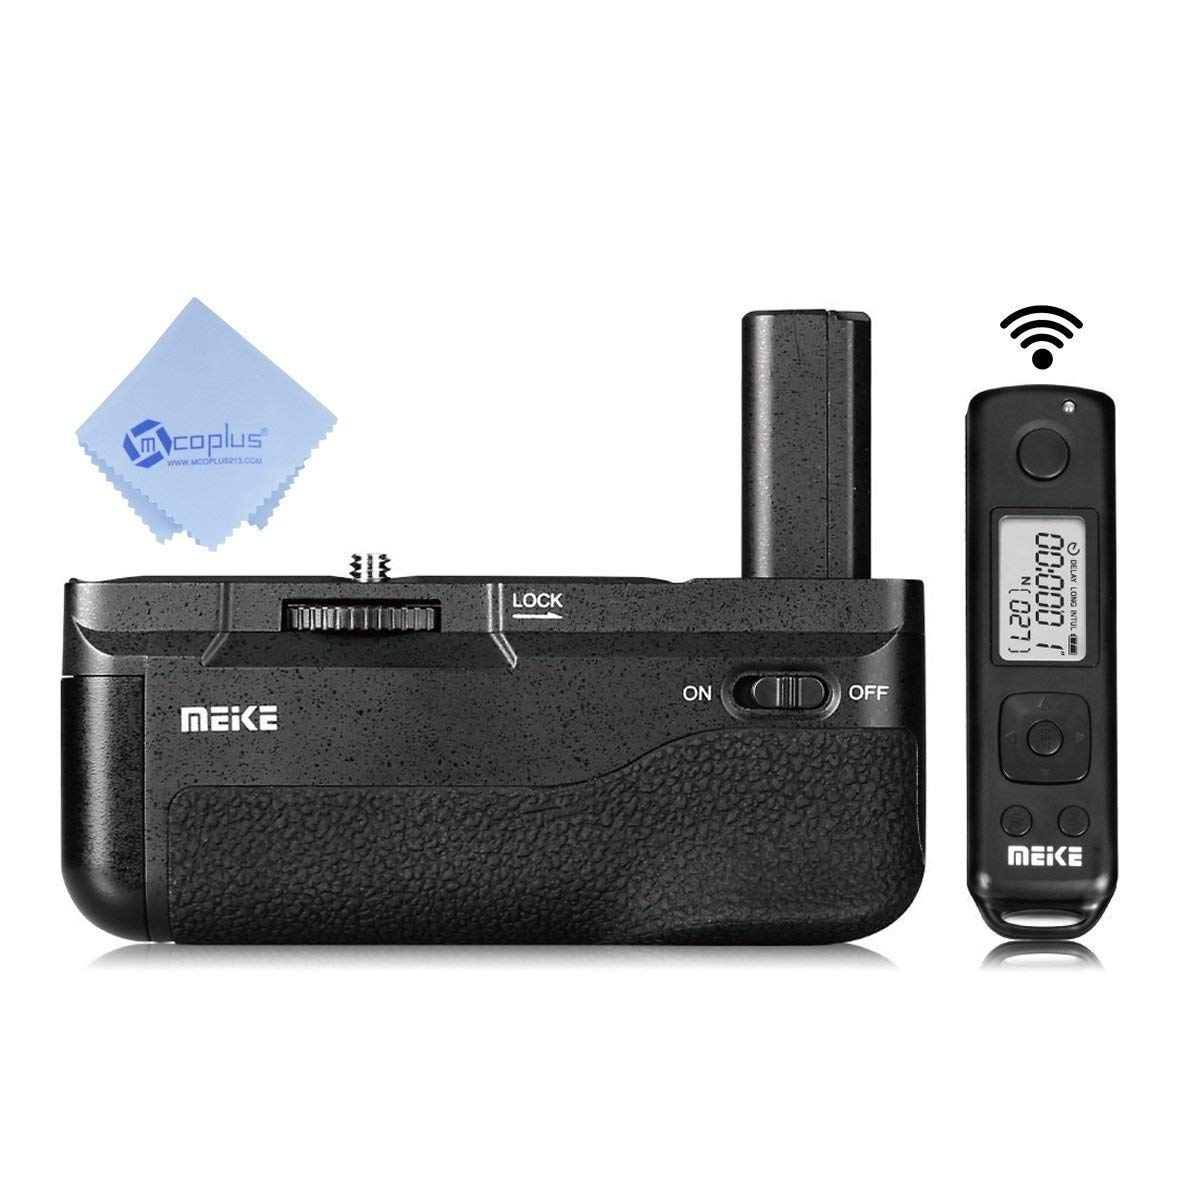 Meike MK-A6500 Pro Battery Grip Built-in 2.4GHZ Remote Controller Vertical-Shooting Function Compatible for Sony A6500 Camera +Mcoplus Cloth by Meike